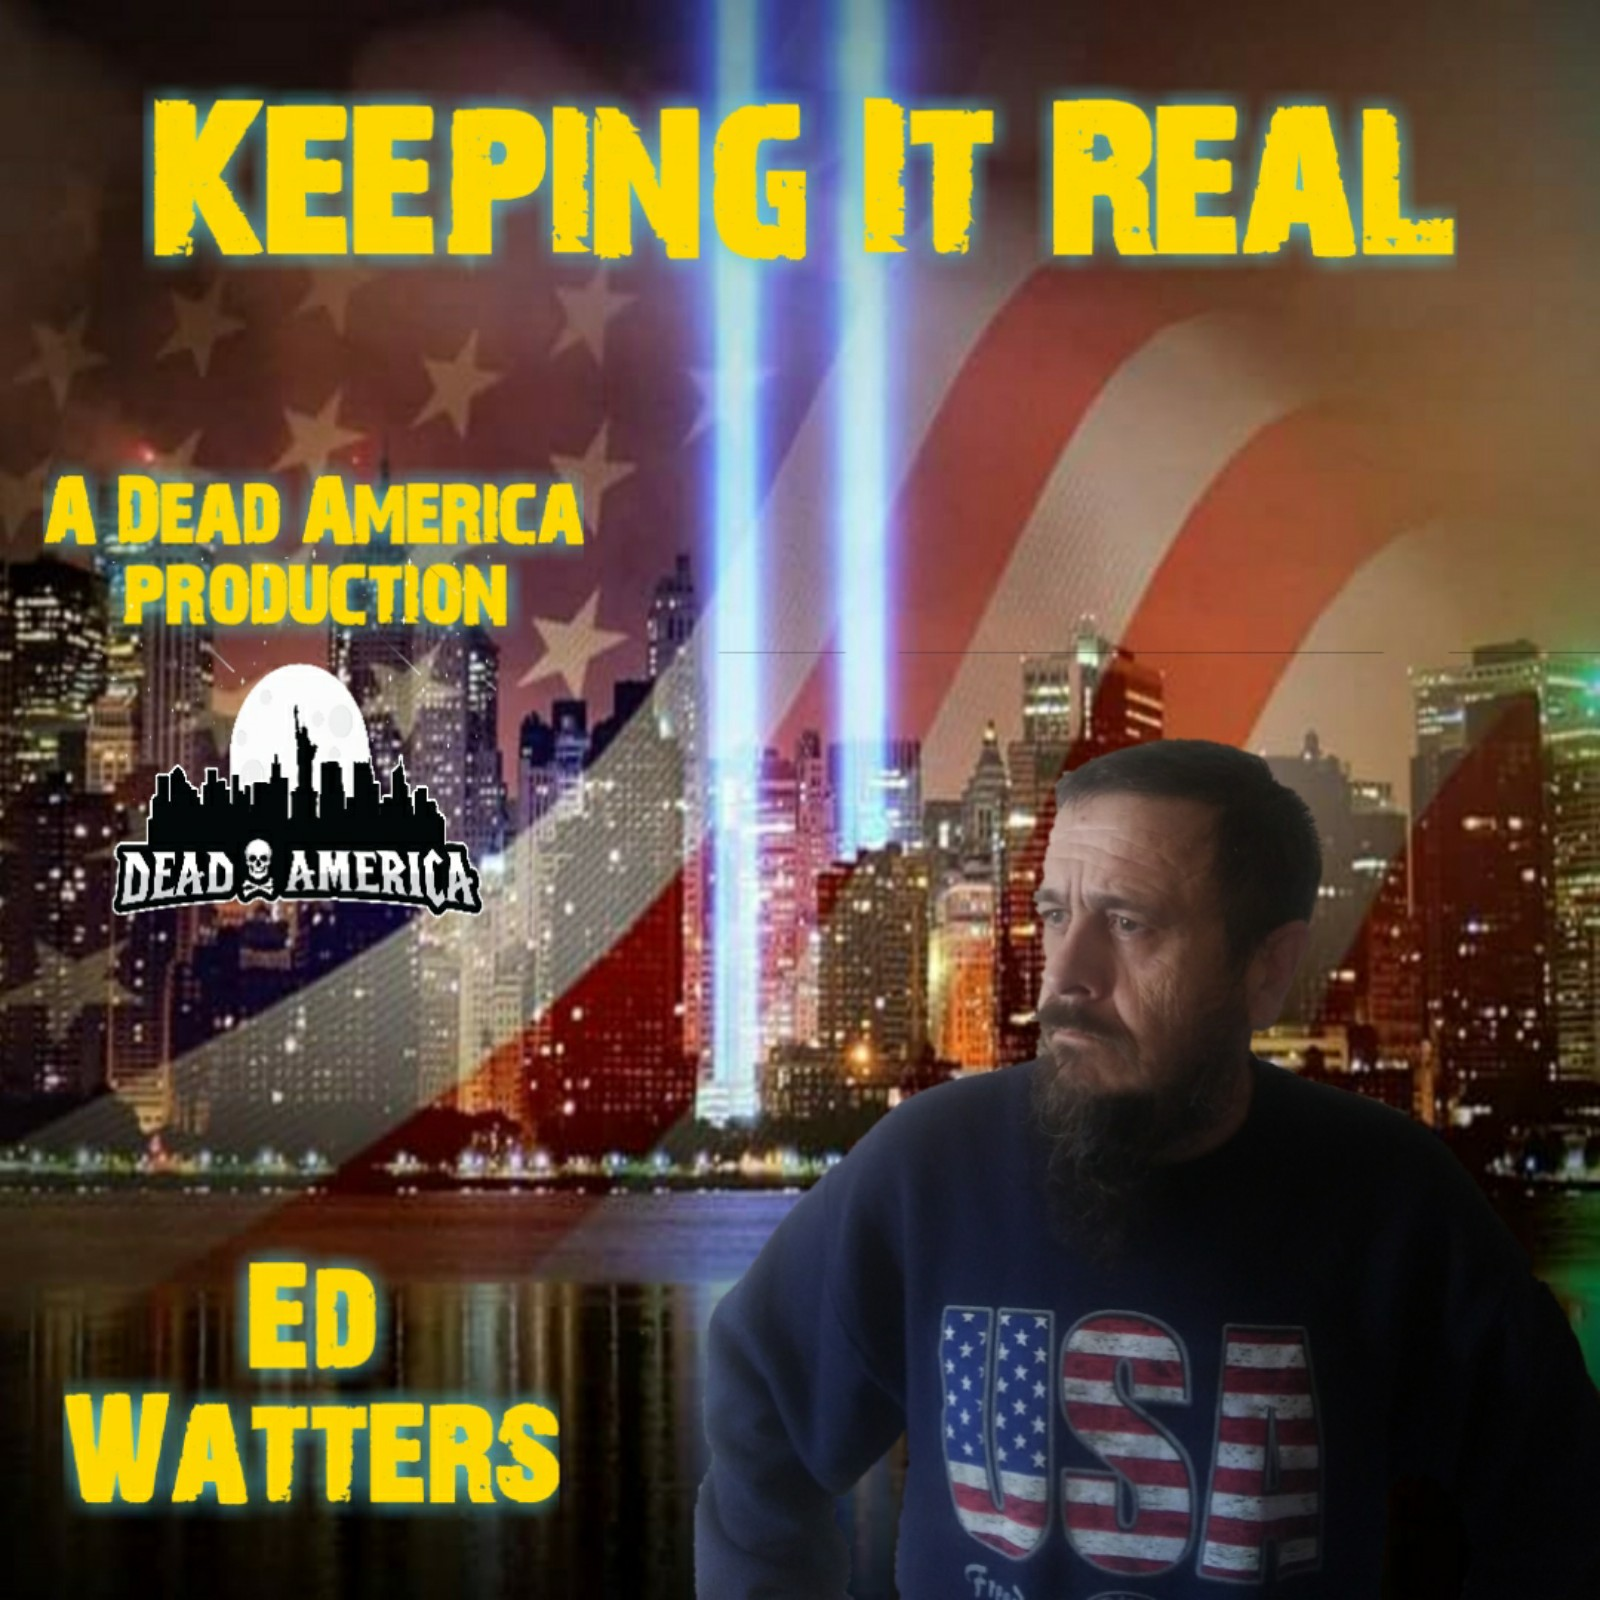 Show artwork for Keeping it real